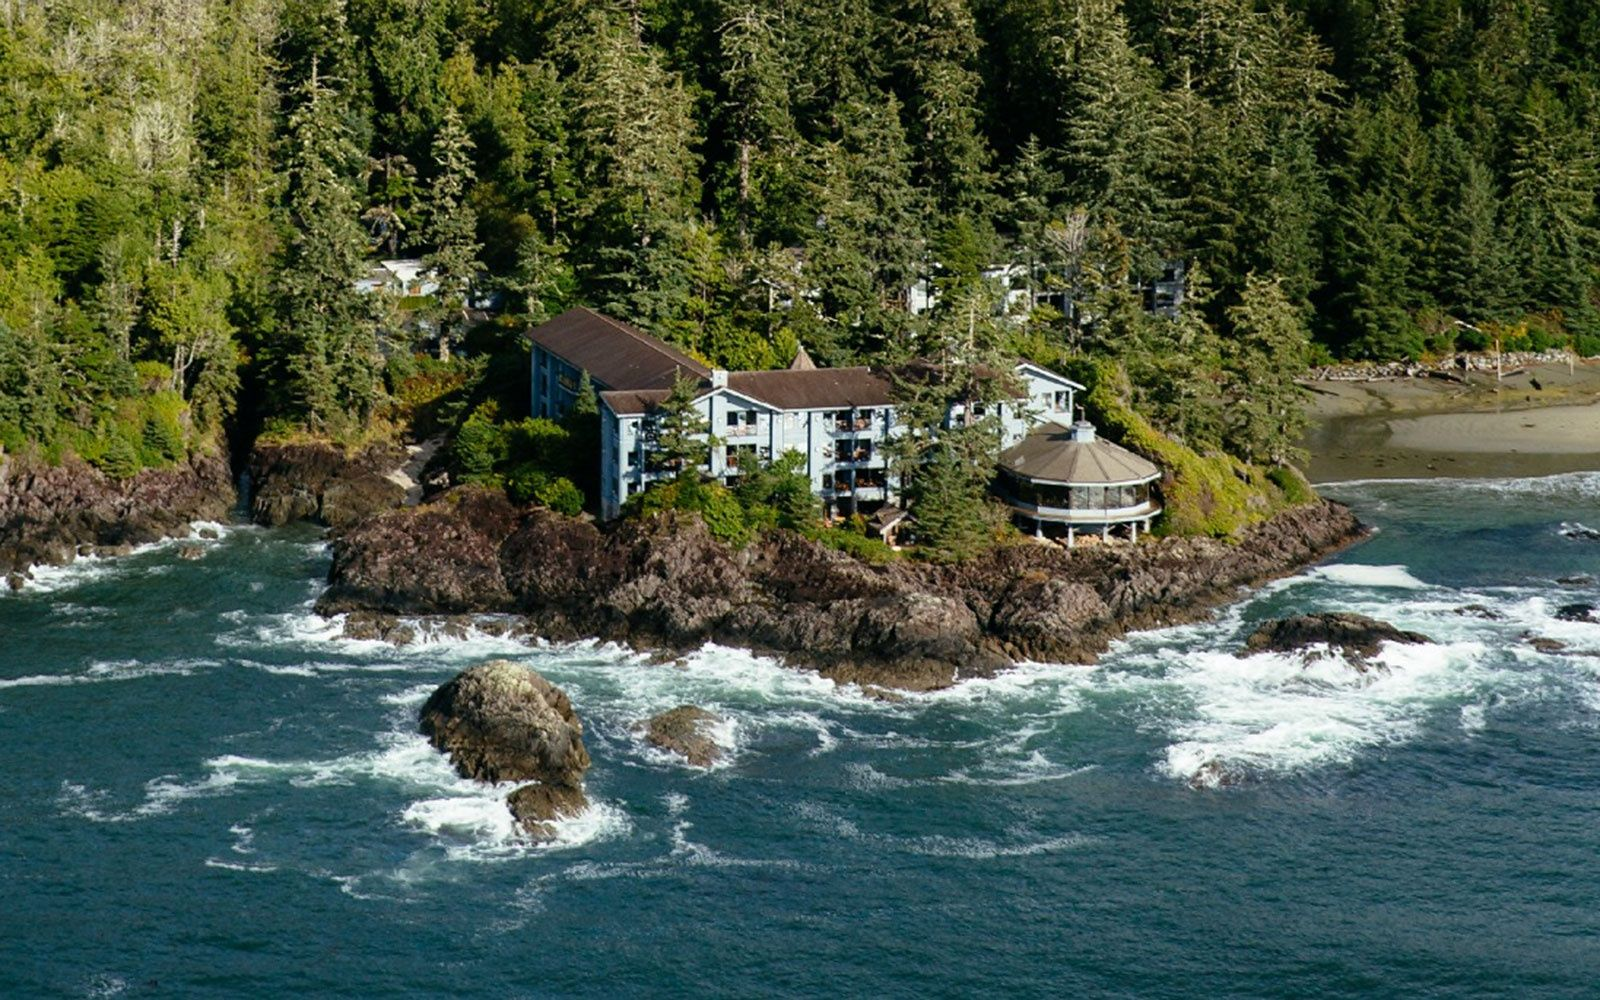 Wickaninnihsh Inn In Tofino British Colombia Is A 75 Room Resort On Vancouver Island